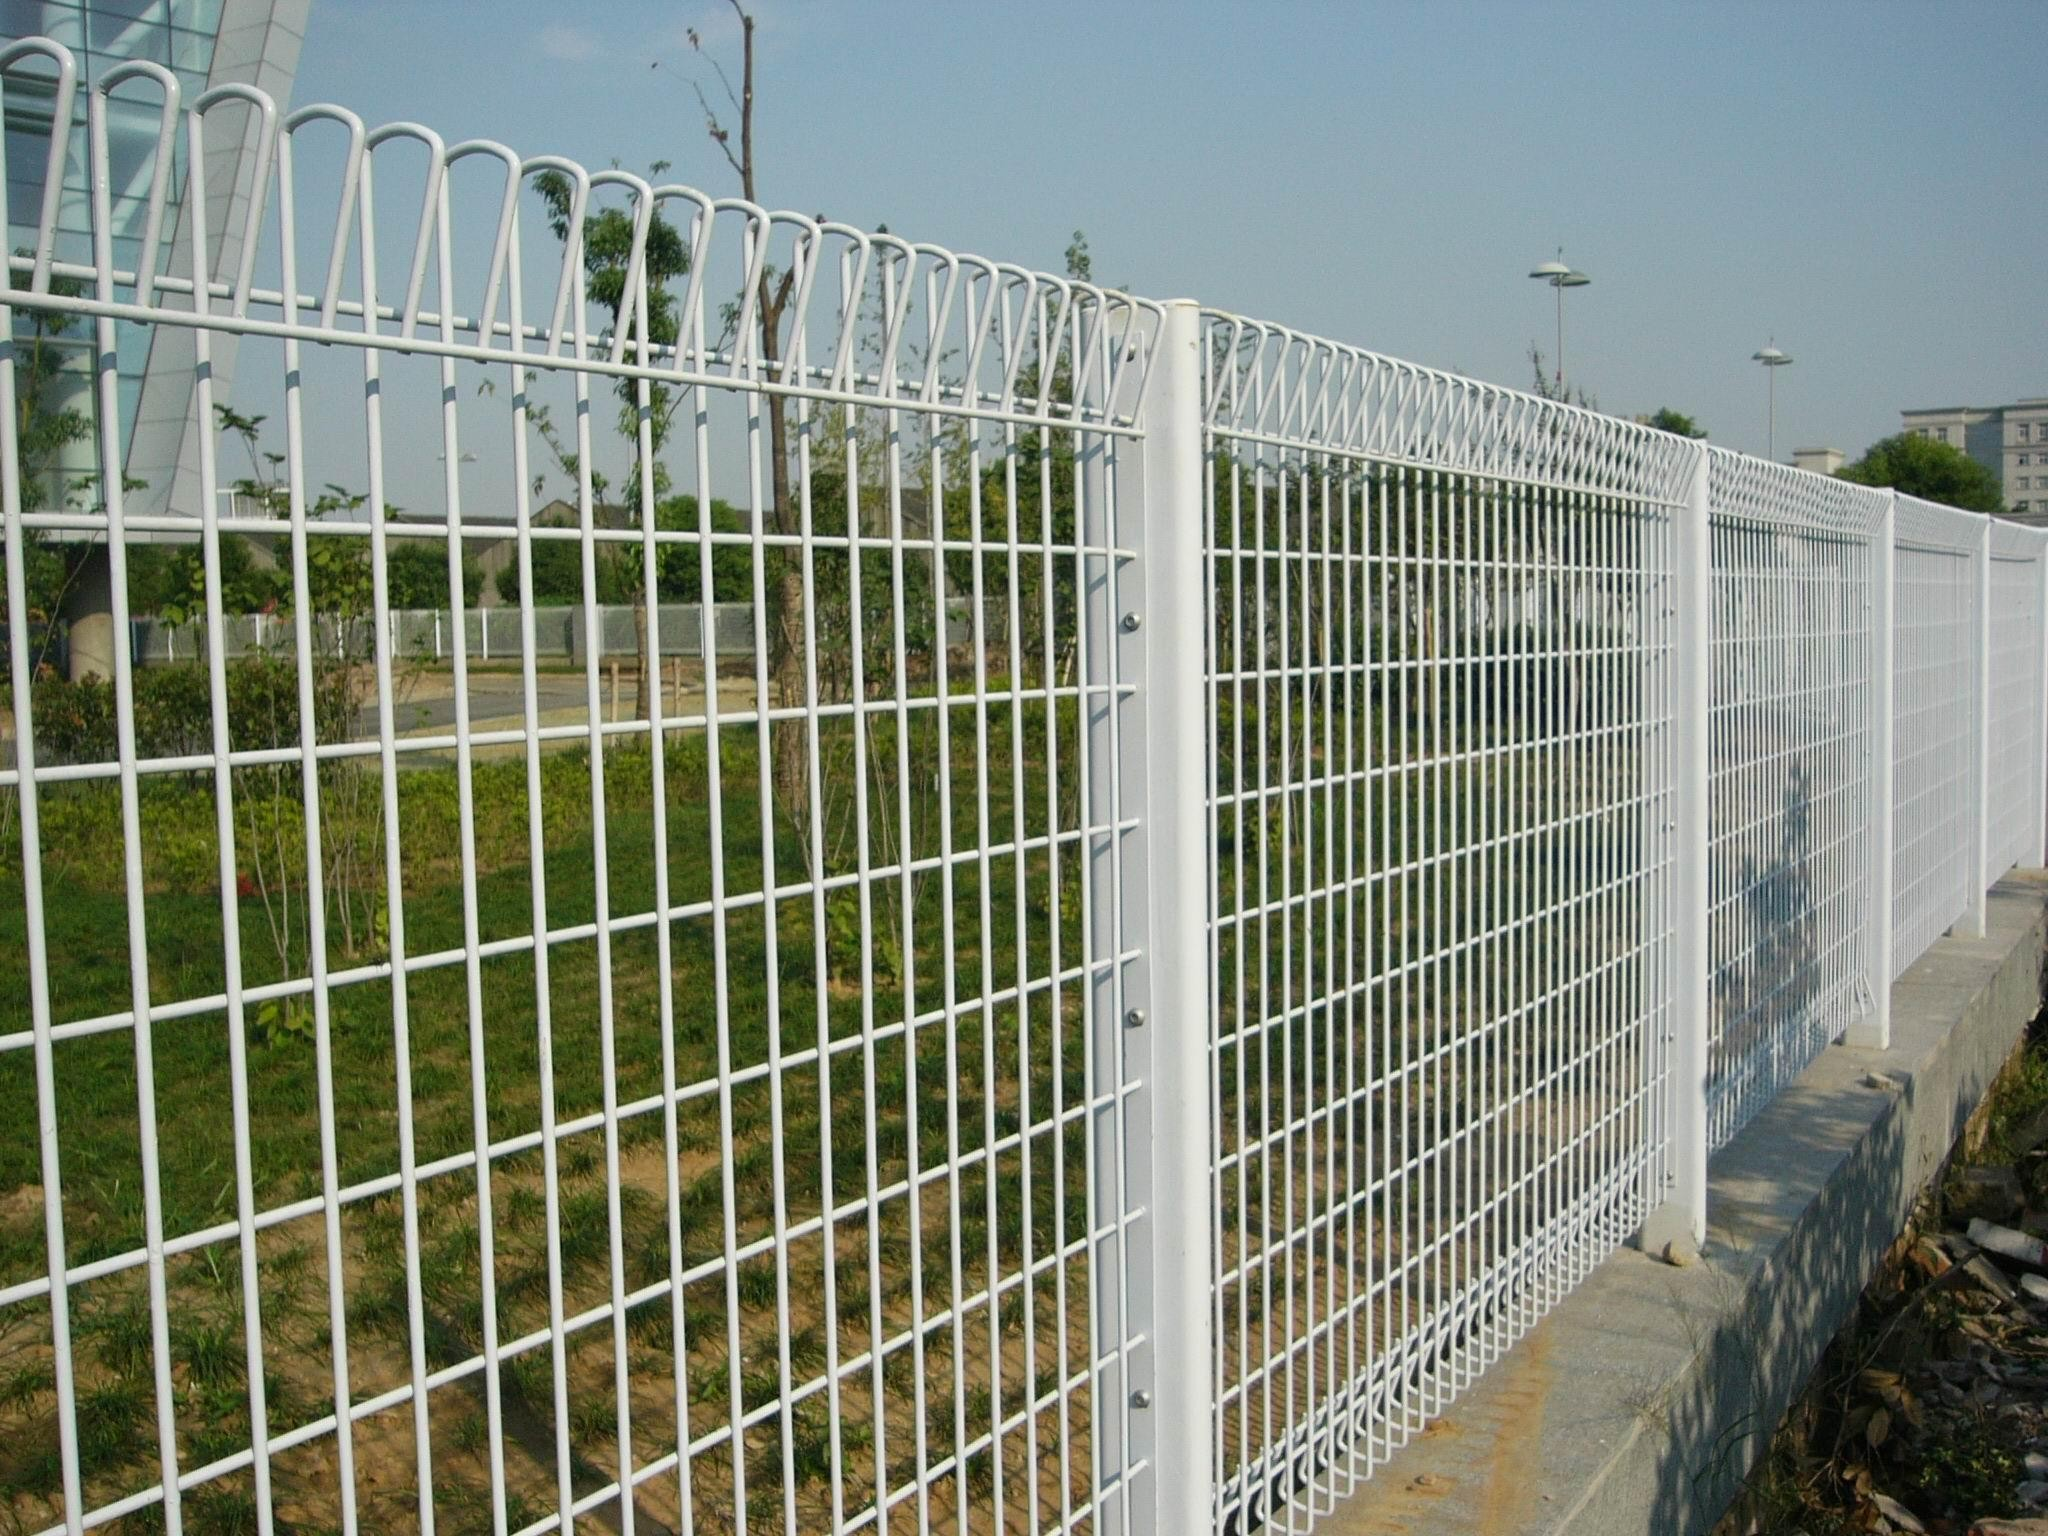 Southeast Asia Triangle Brc Bending Welded Wire Mesh Fence